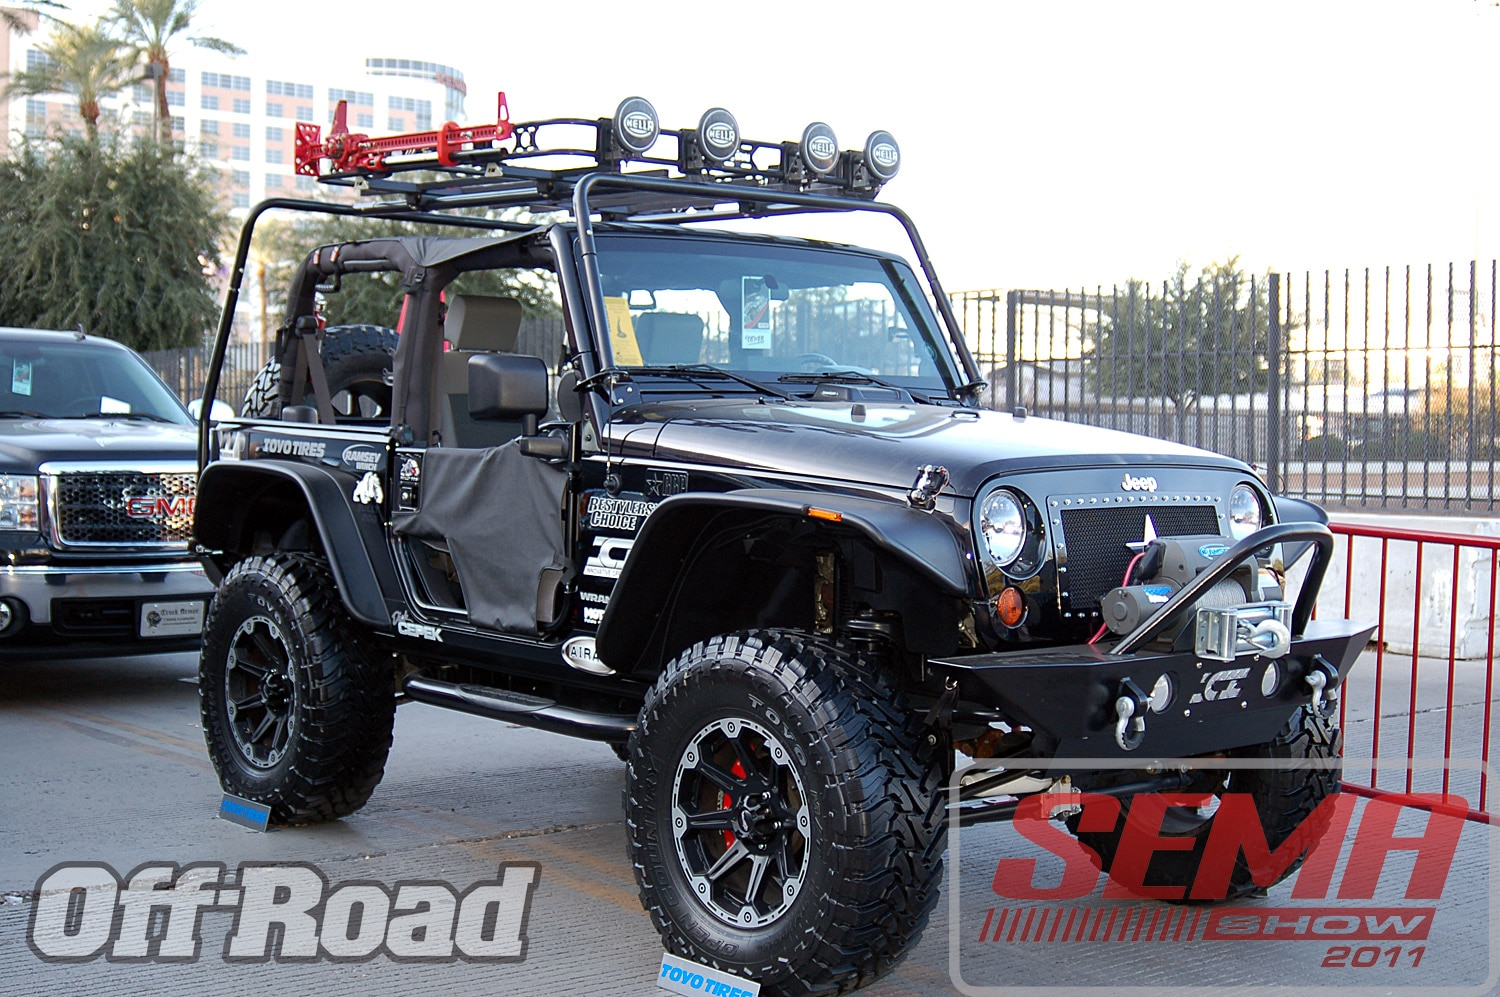 102312or 0117+2011 sema show+off road trucks and products